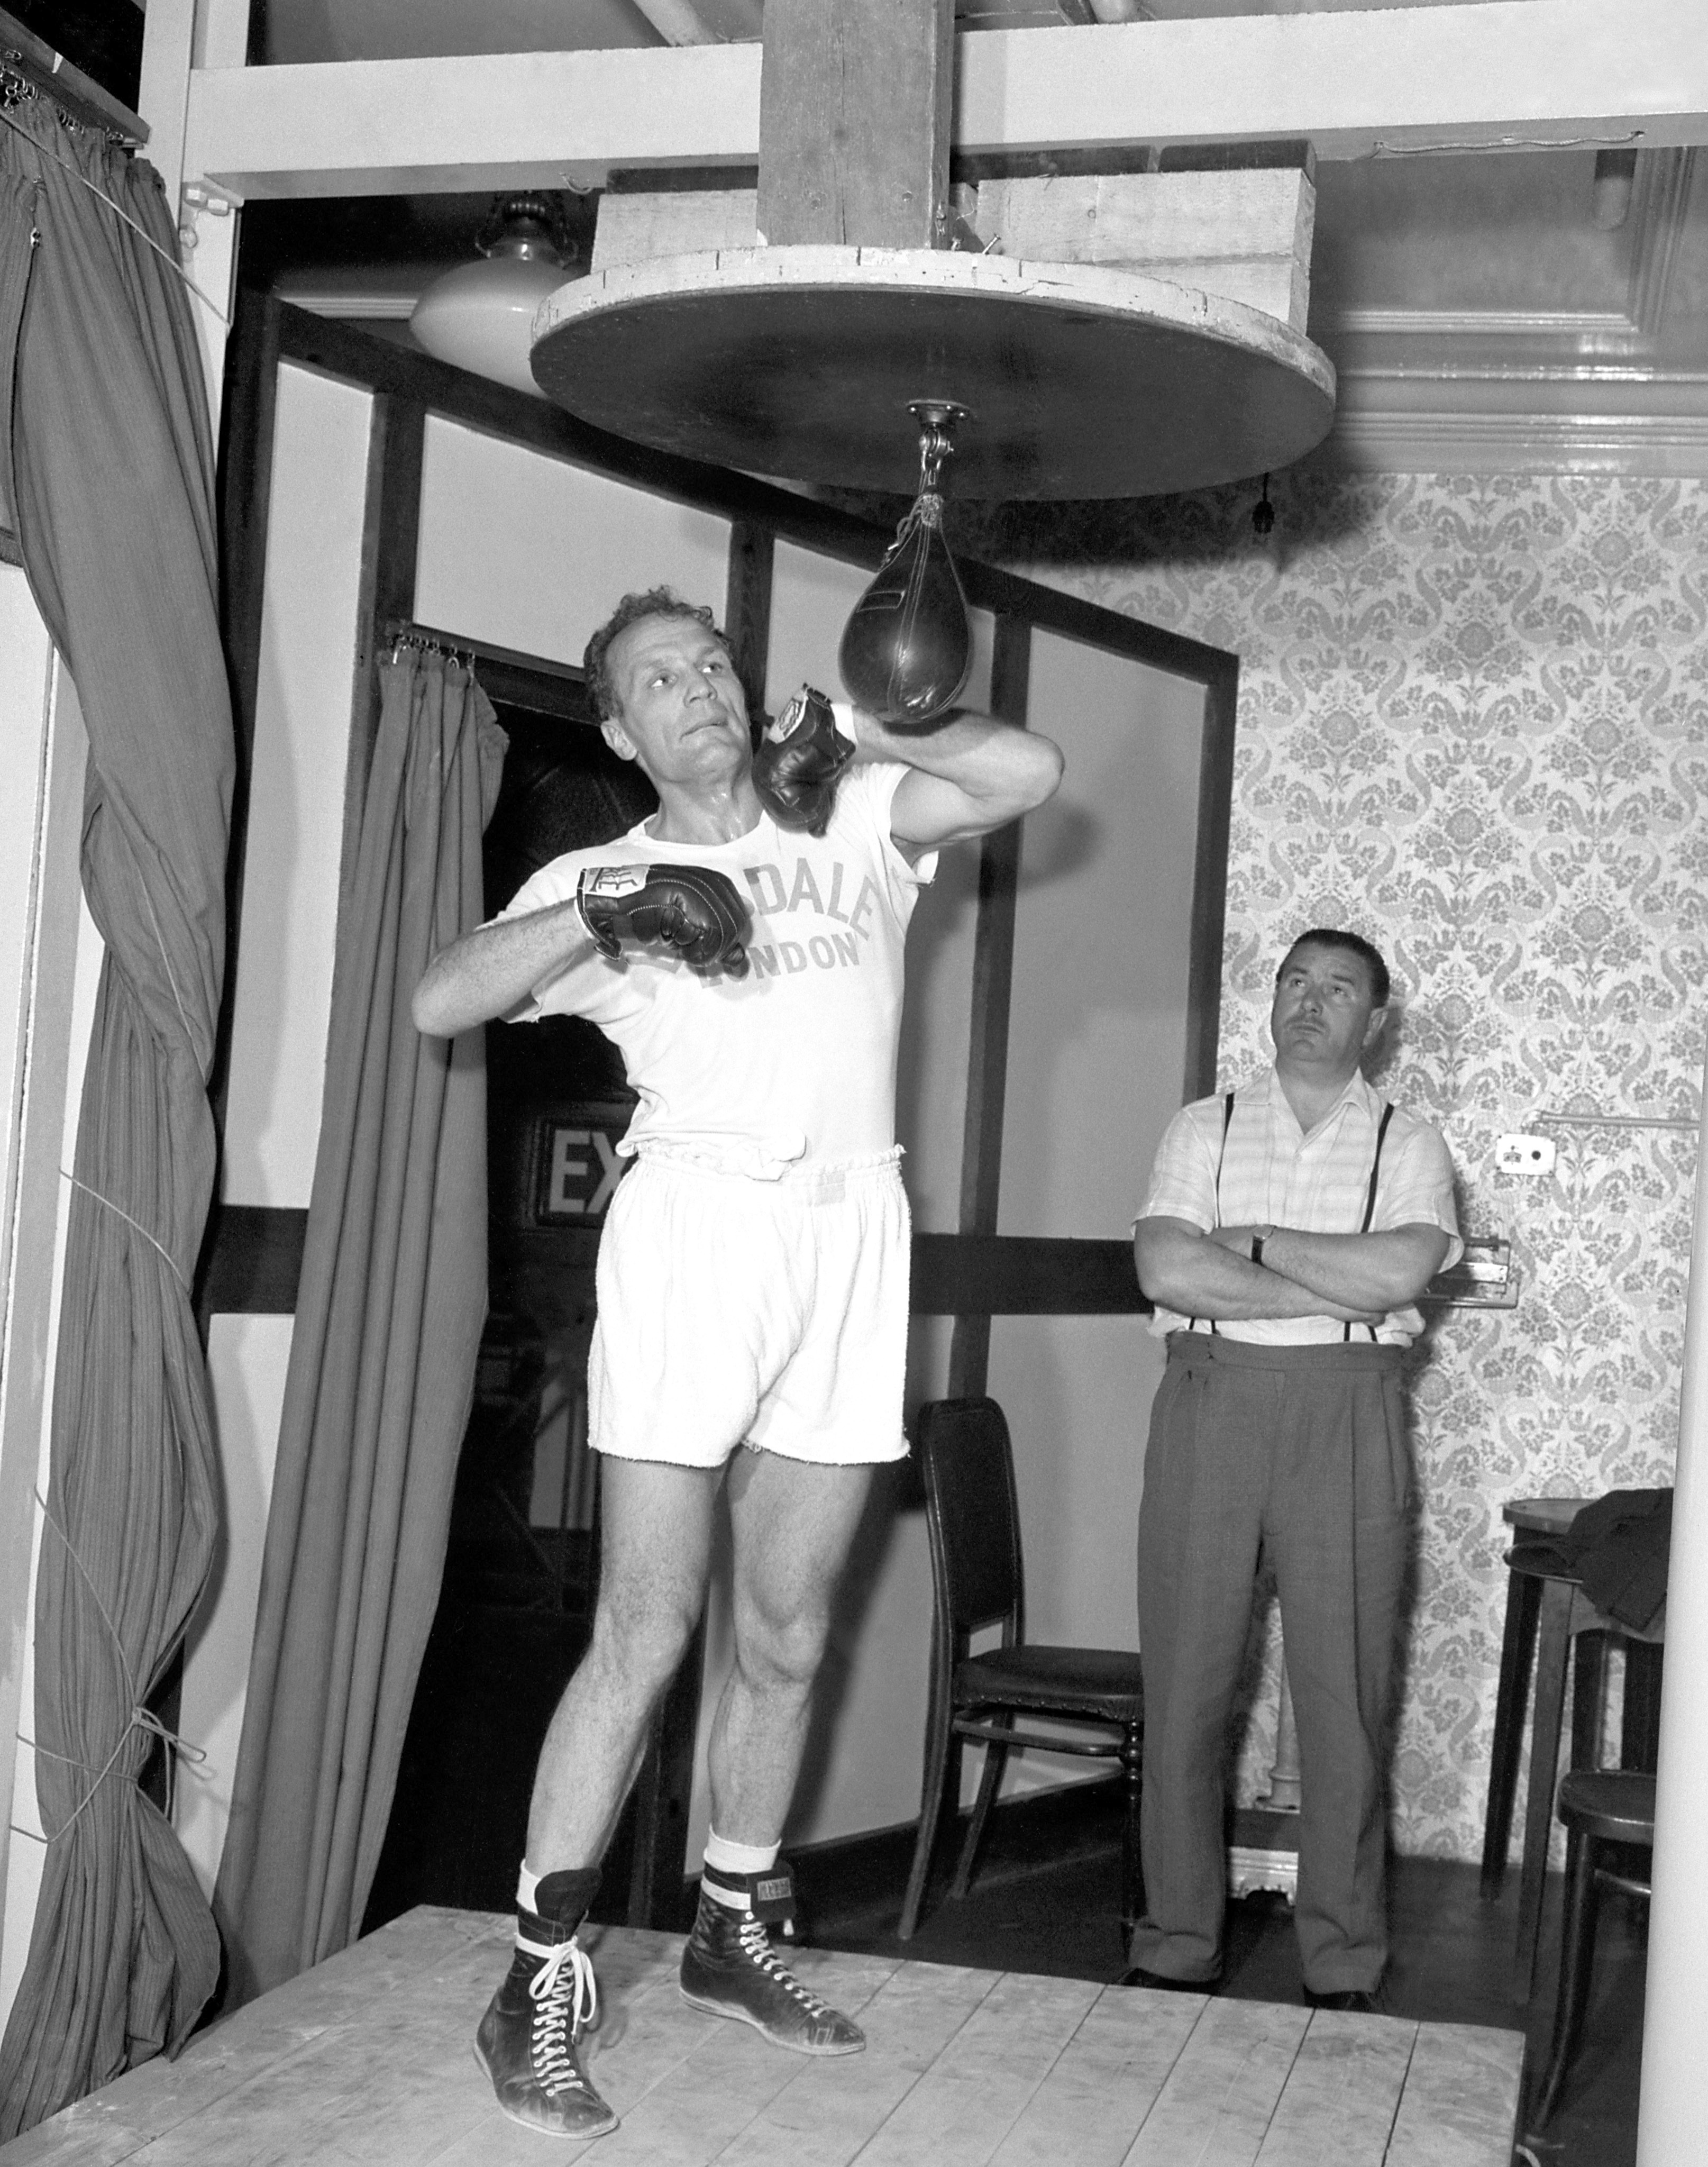 British heavyweight champion Henry Cooper during training at Bellingham in Kent, where he is preparing for an encounter at Wembley with American boxer Cassius Clay.(PA)